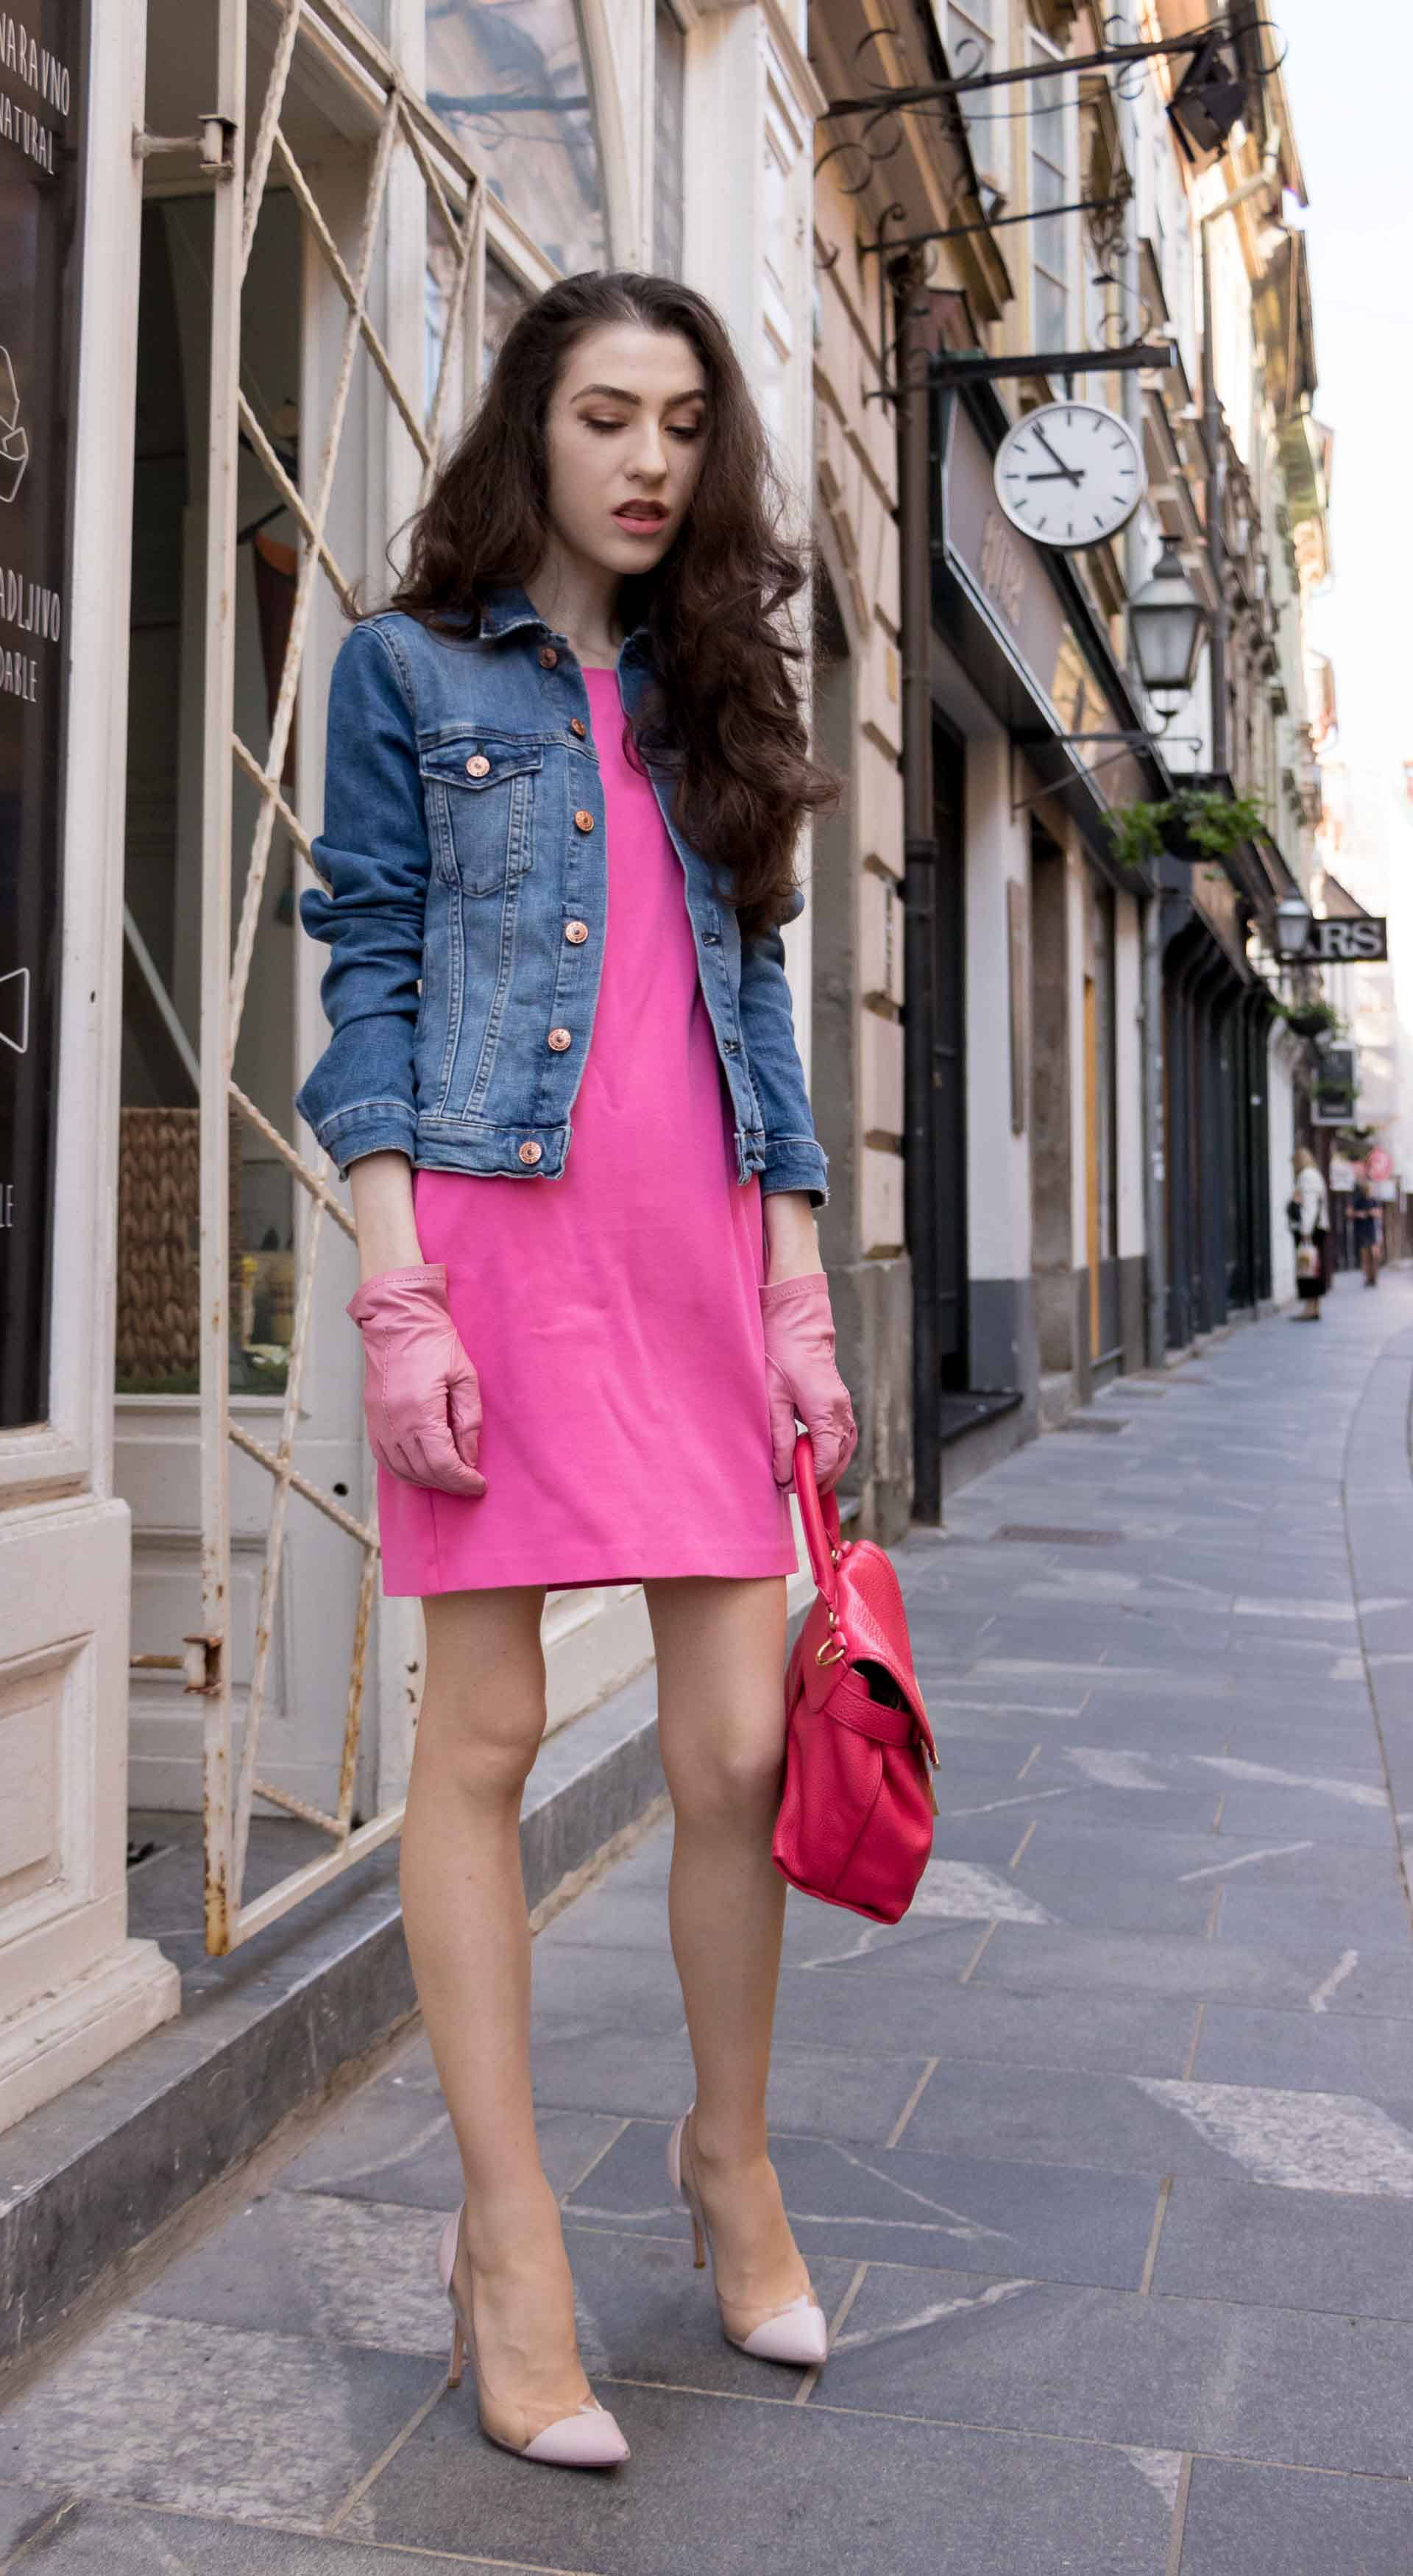 Veronika Lipar Fashion Blogger of Brunette from Wall Street wearing H&M denim jacket, pink cocktail dress, blush Gianvito Rossi plexi pumps, pink Forzieri gloves, See by Chloé pink top handle bag, Adam Selman x Le Specs white cat eye Lolita sunglasses while standing on the street in Ljubljana